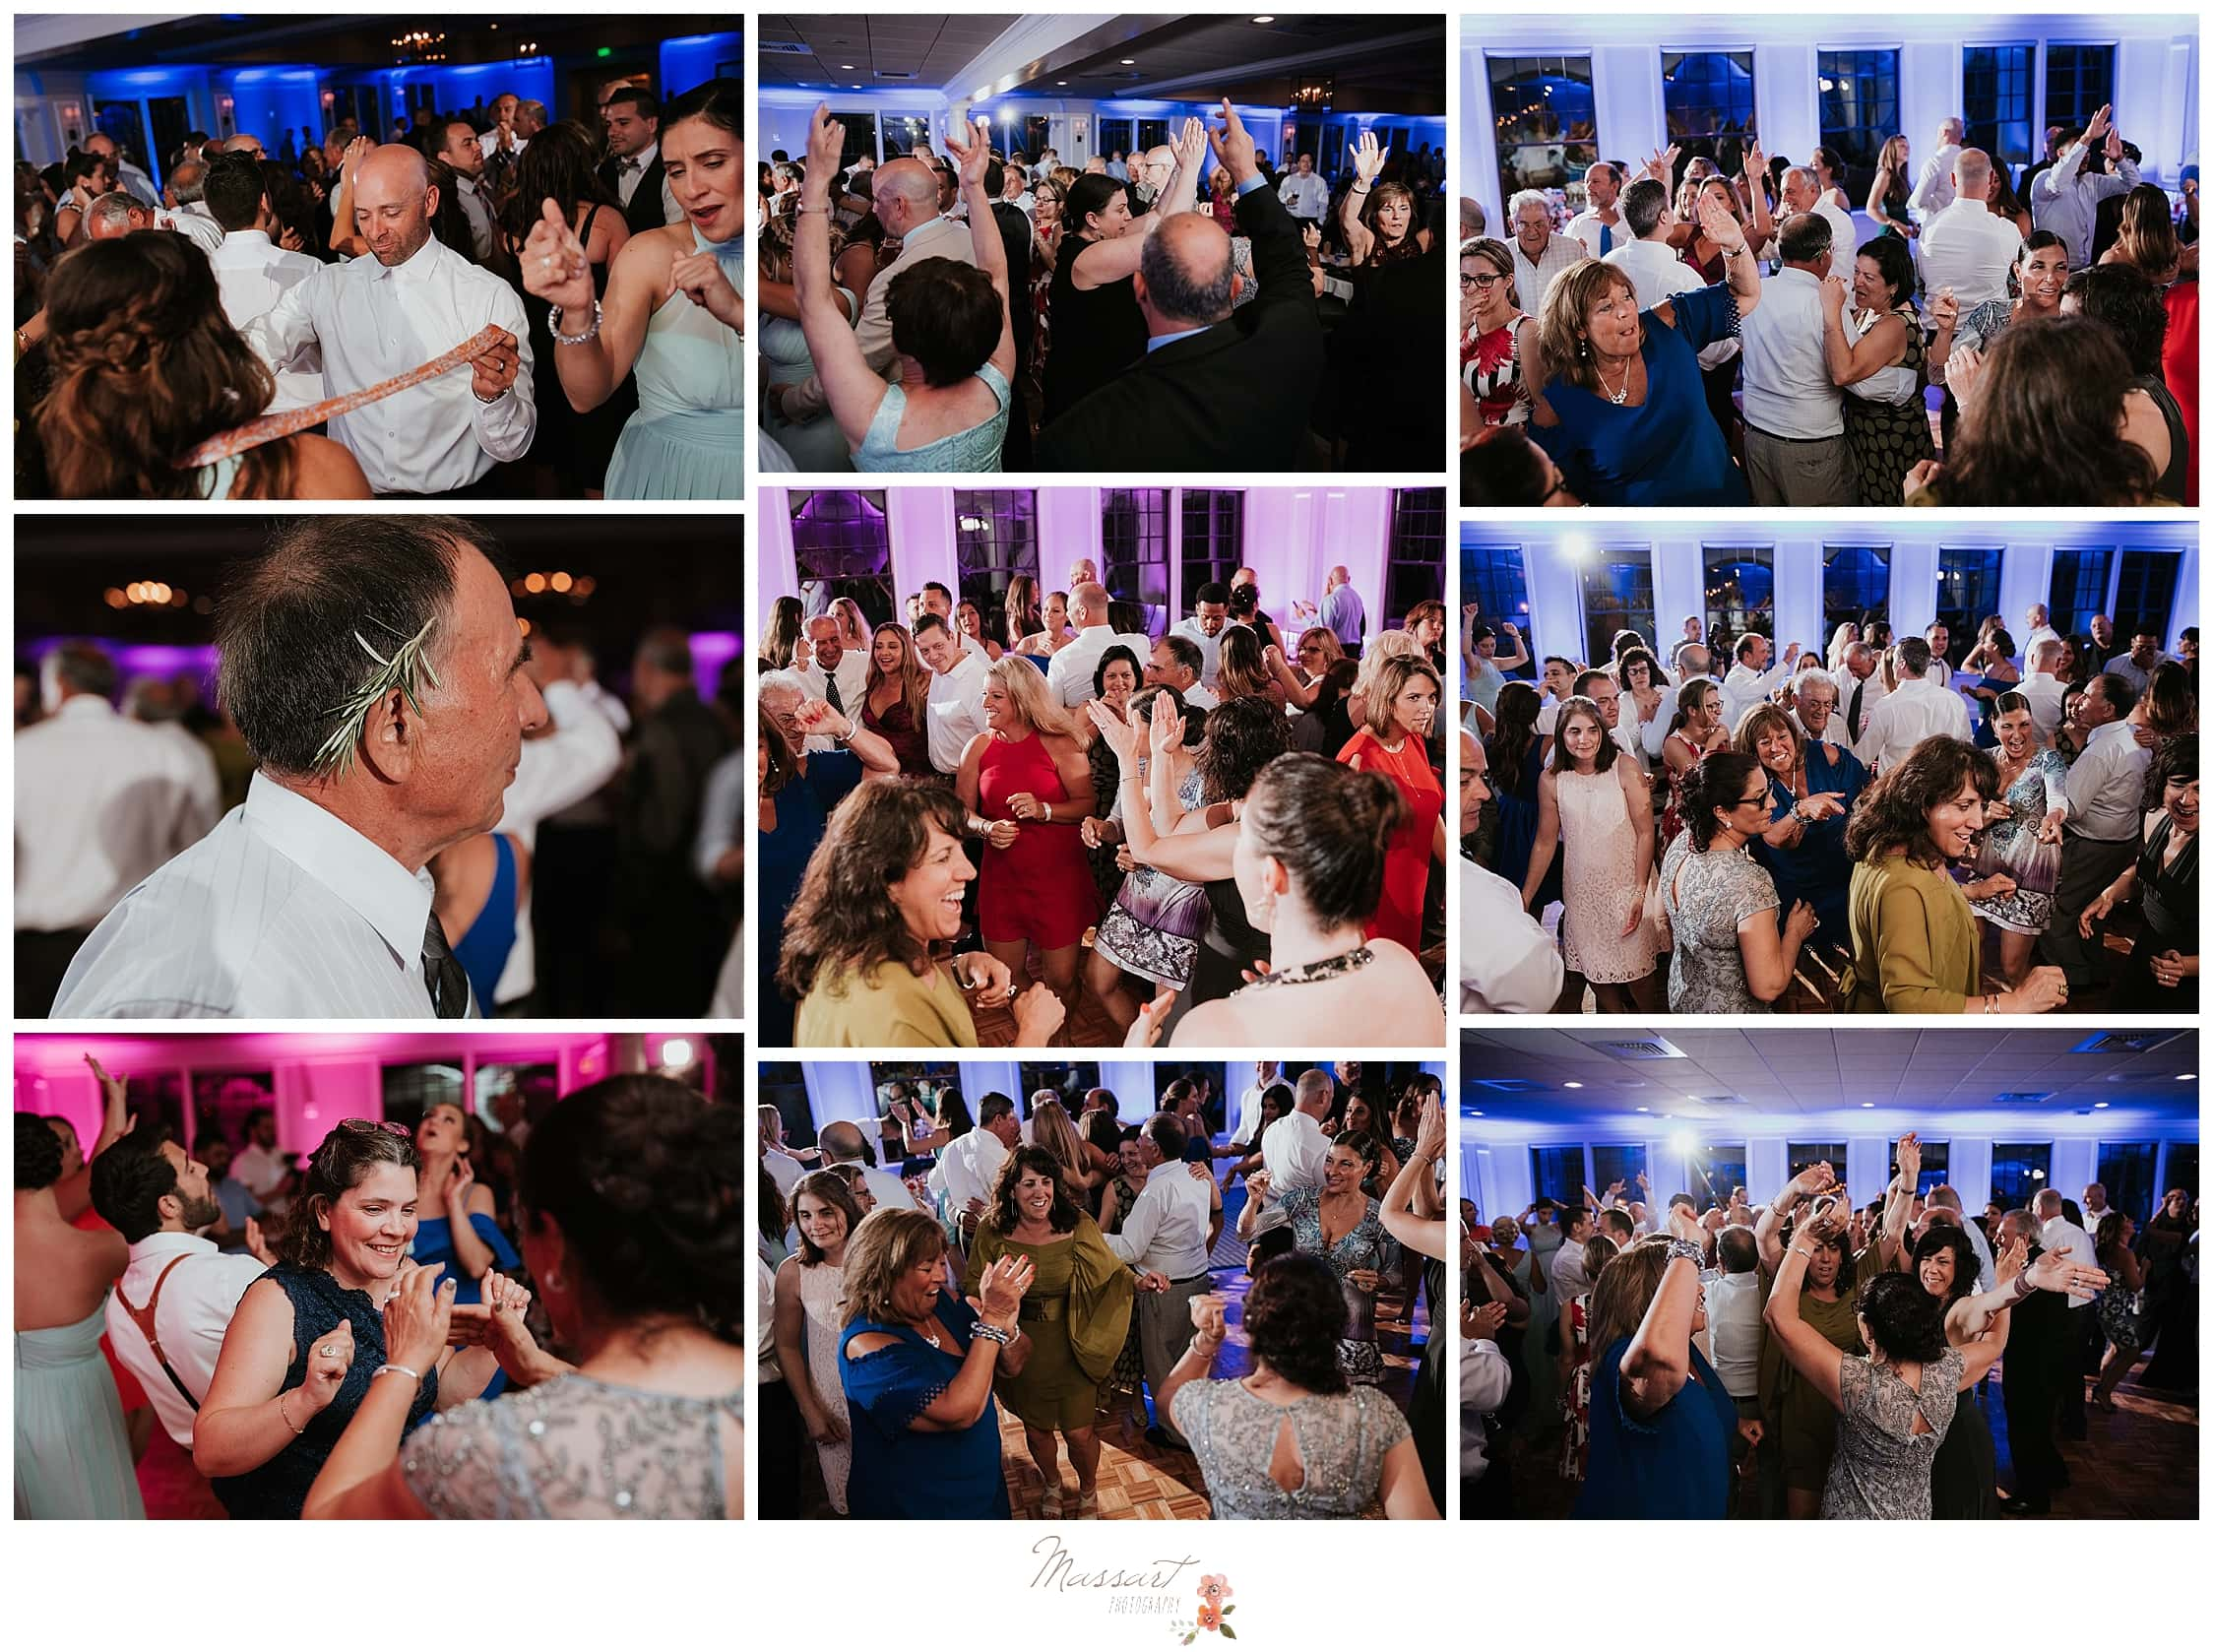 Wedding guests dancing during wedding reception at Harbor Lights photographed by Massart Photography, RI wedding photographers.